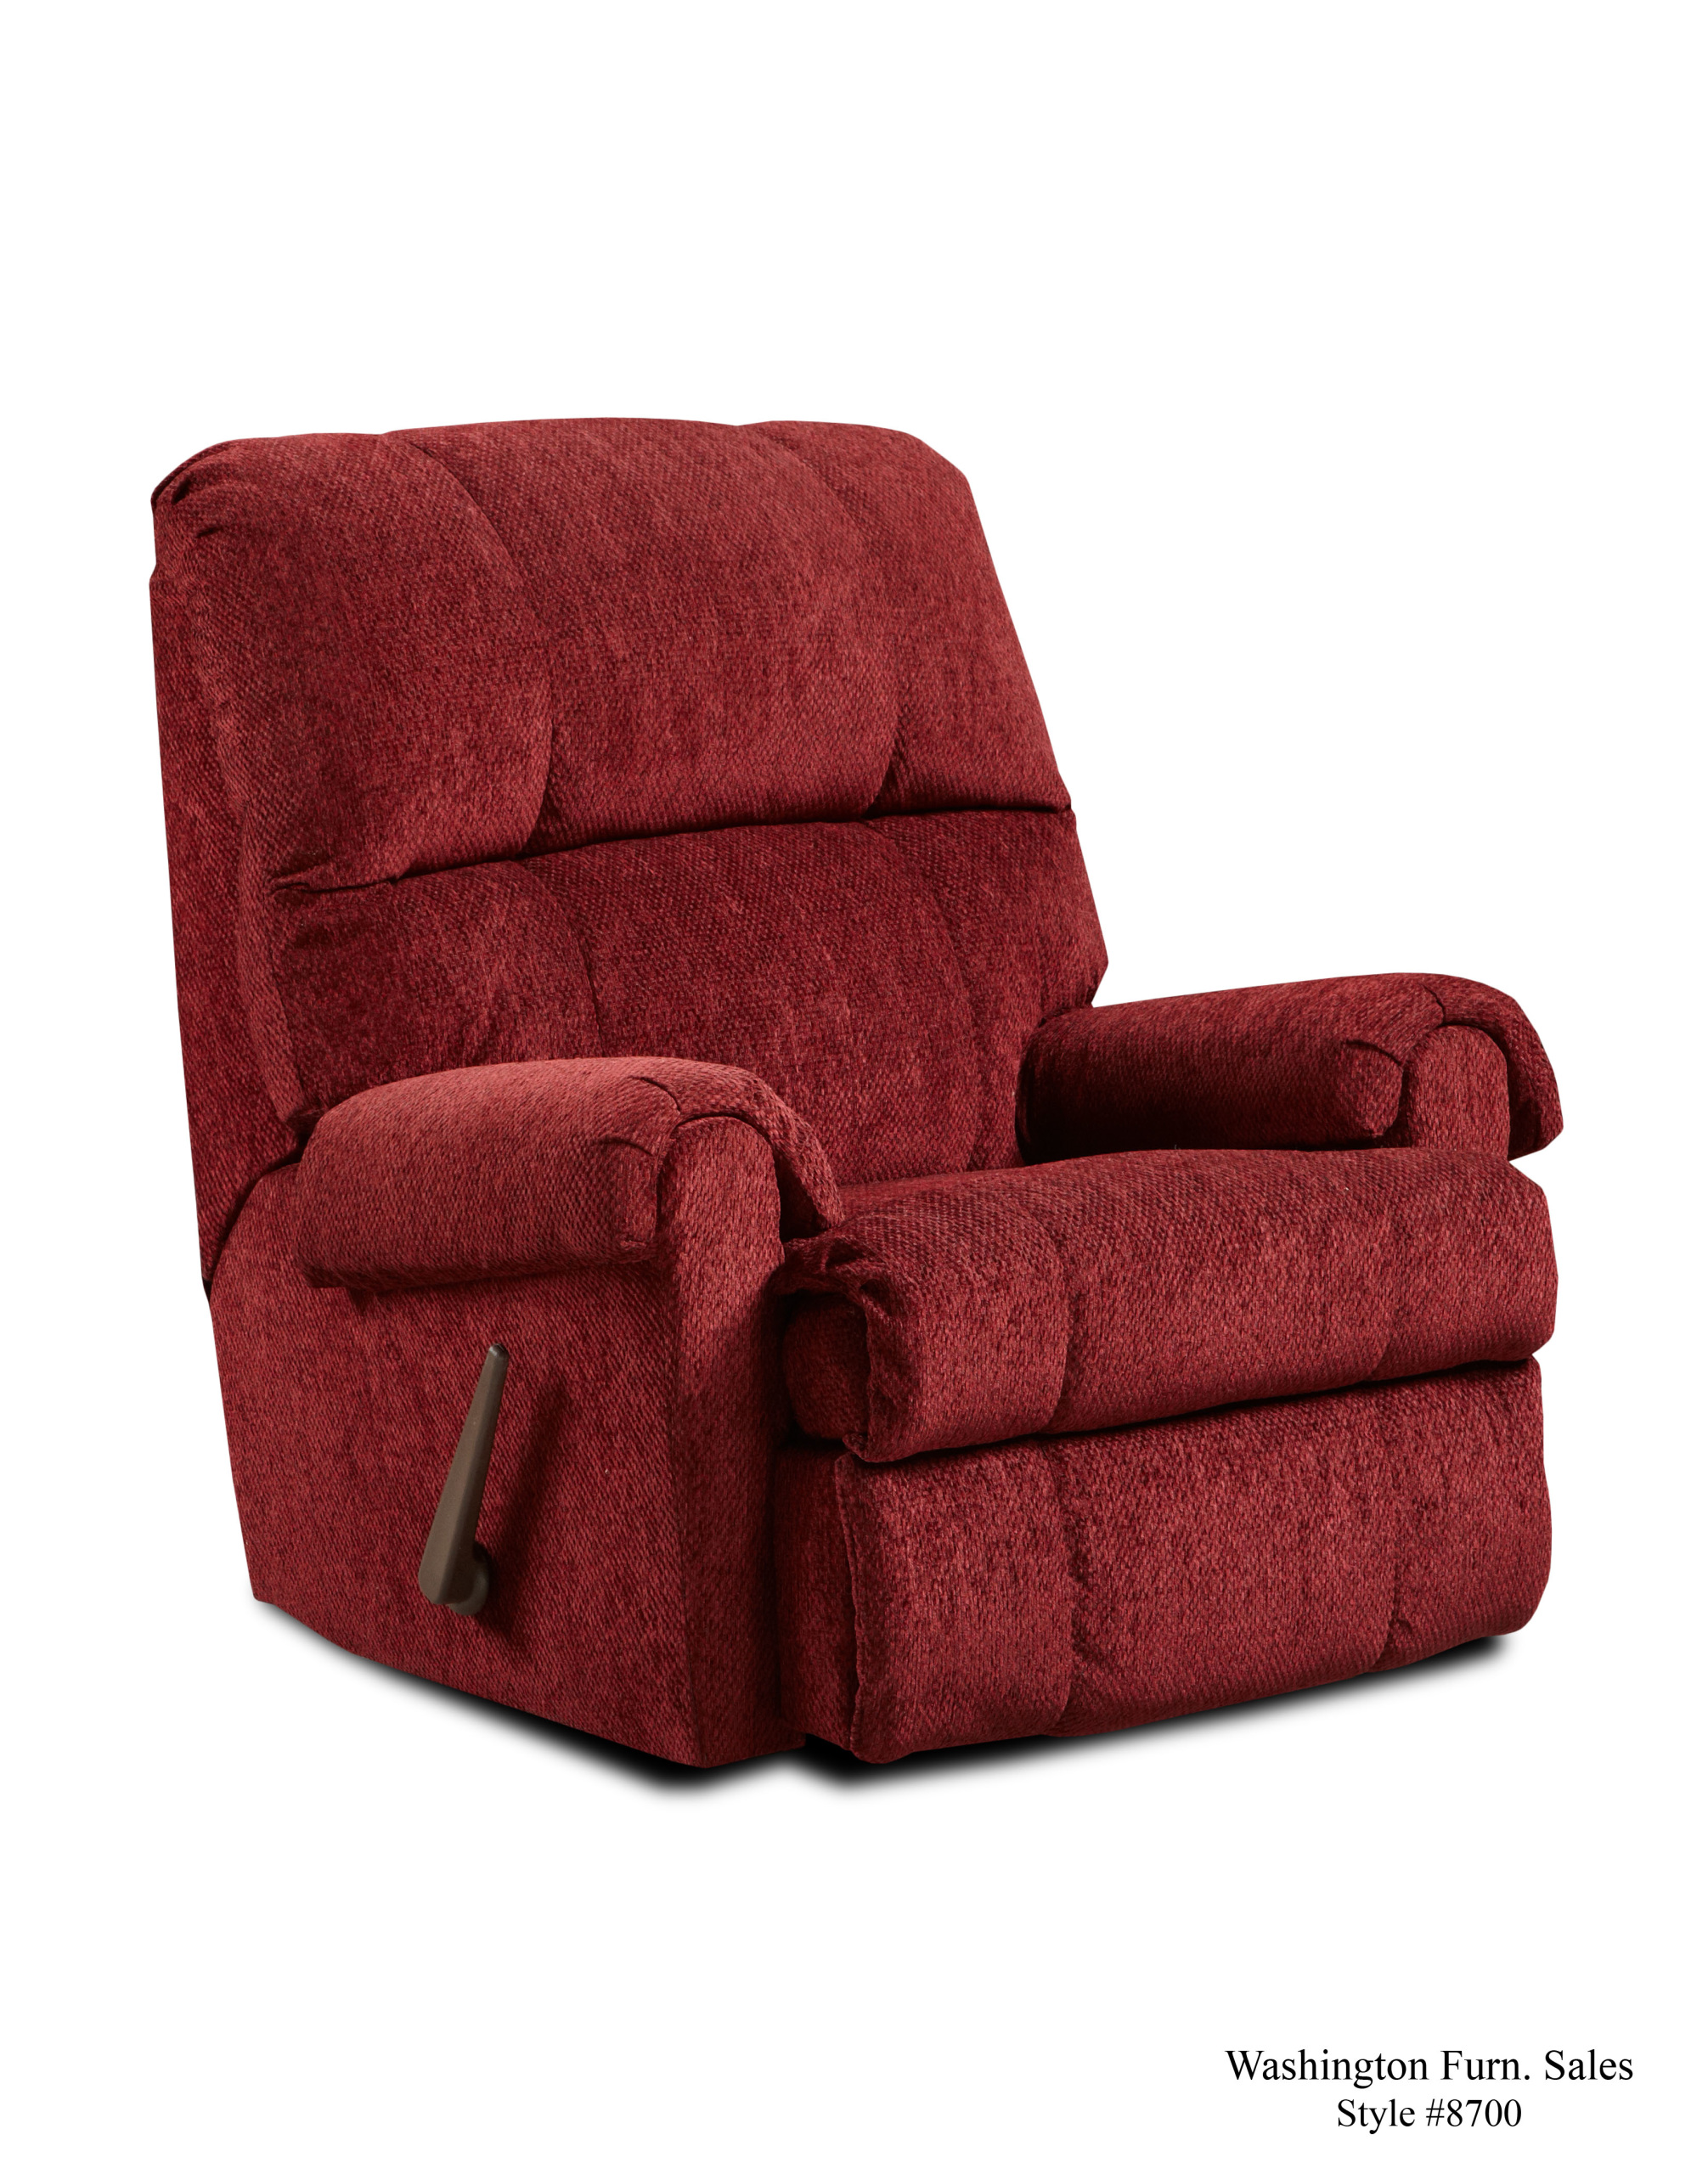 Discount Furniture Lancaster Ohio Store > Recliners > Tahoe Burgundy Recliner